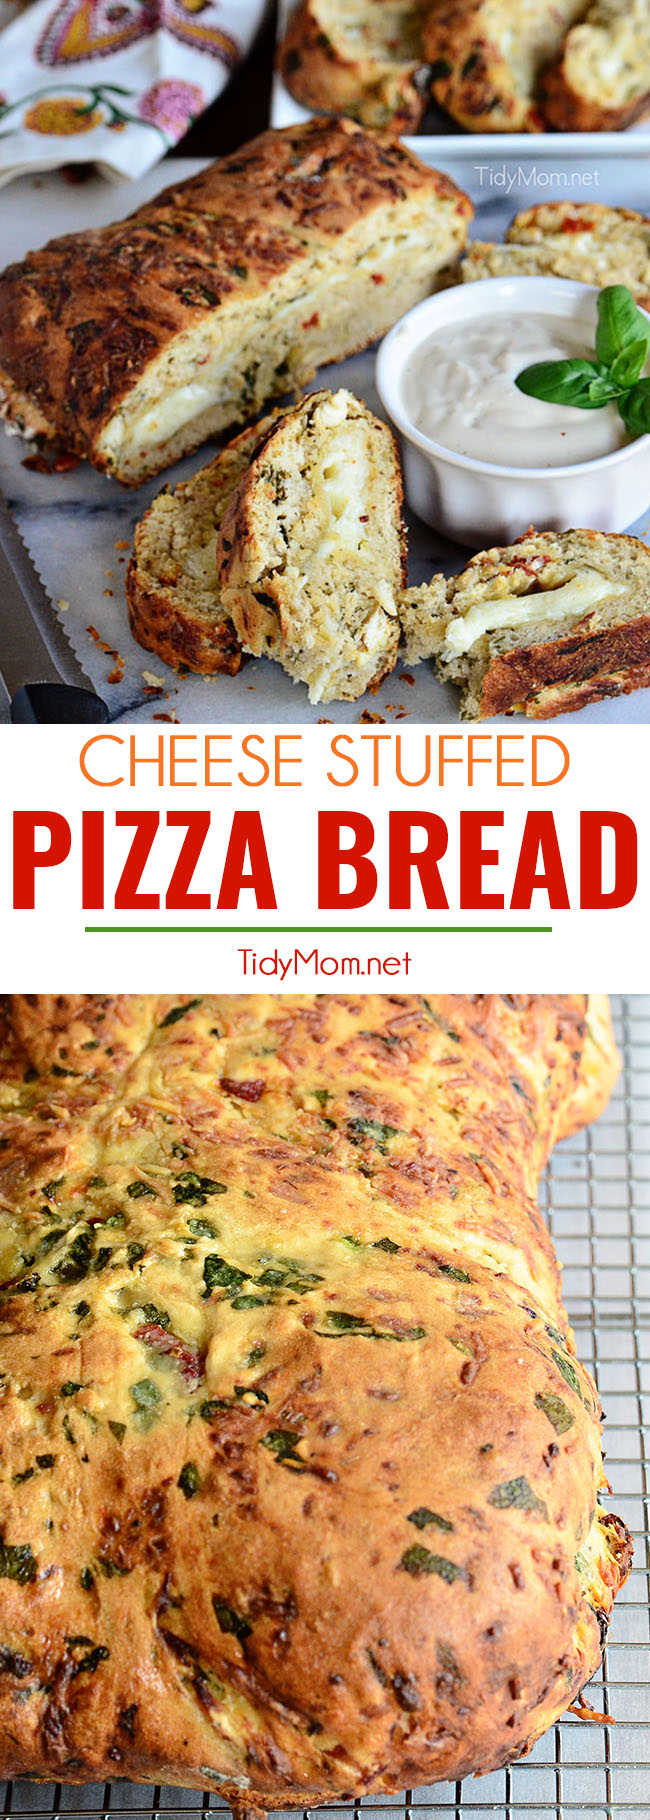 Pizza Bread is a twist on traditional pizza. Bread dough seasoned with chicken, fresh spinach, sun-dried tomatoes and stuffed with cheese. Served warm with Alfredo sauce. Print the full recipe at TidyMom.net